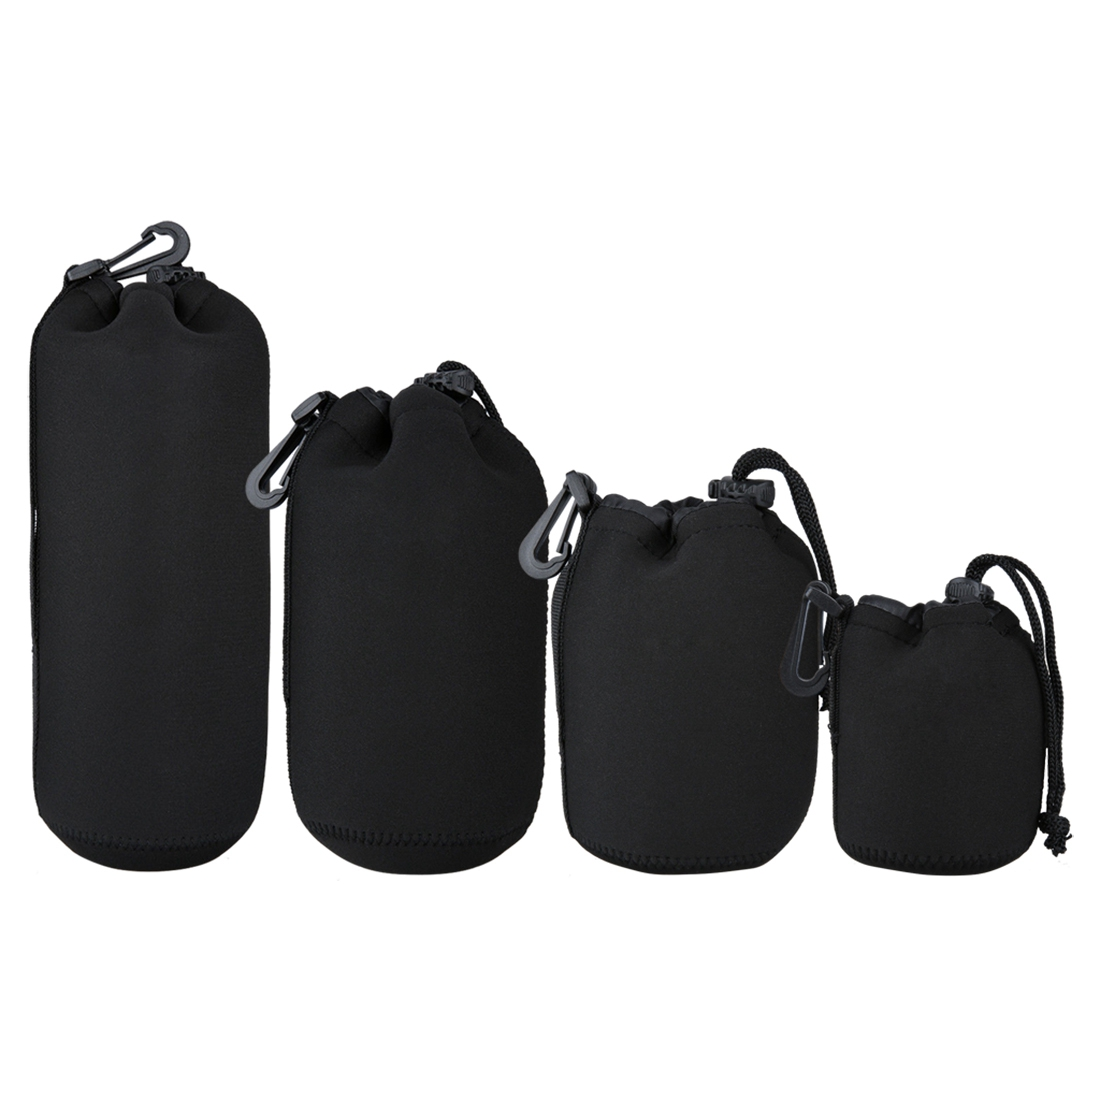 IG-4Pcs DSLR Camera Lens Pouch Bag Neoprene Soft Bag Waterproof Case S+M+L+XL Size image